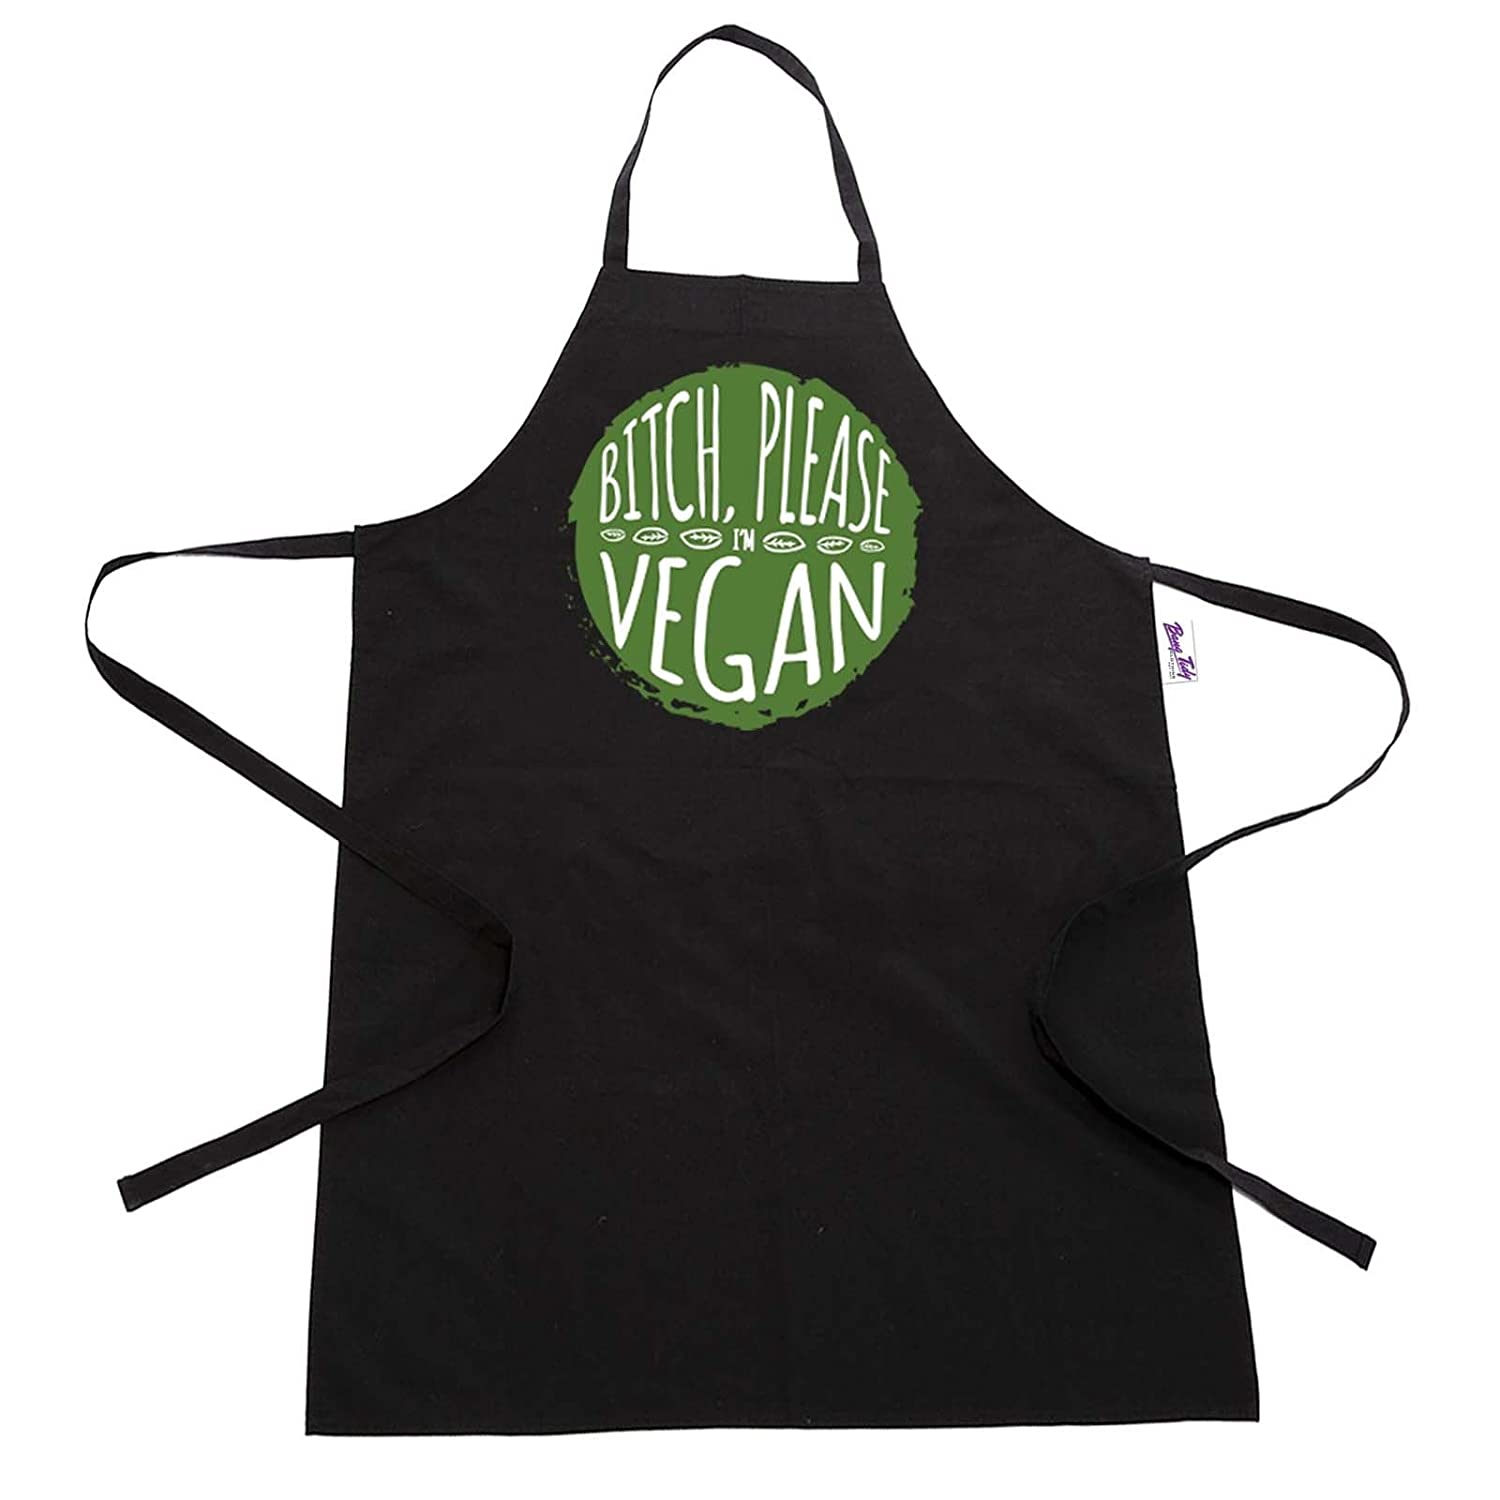 Funny BBQ Apron Novelty Aprons Cooking Gifts for Men Bitch Please, I'm Vegan I'm Vegan BANG TIDY CLOTHING HF122